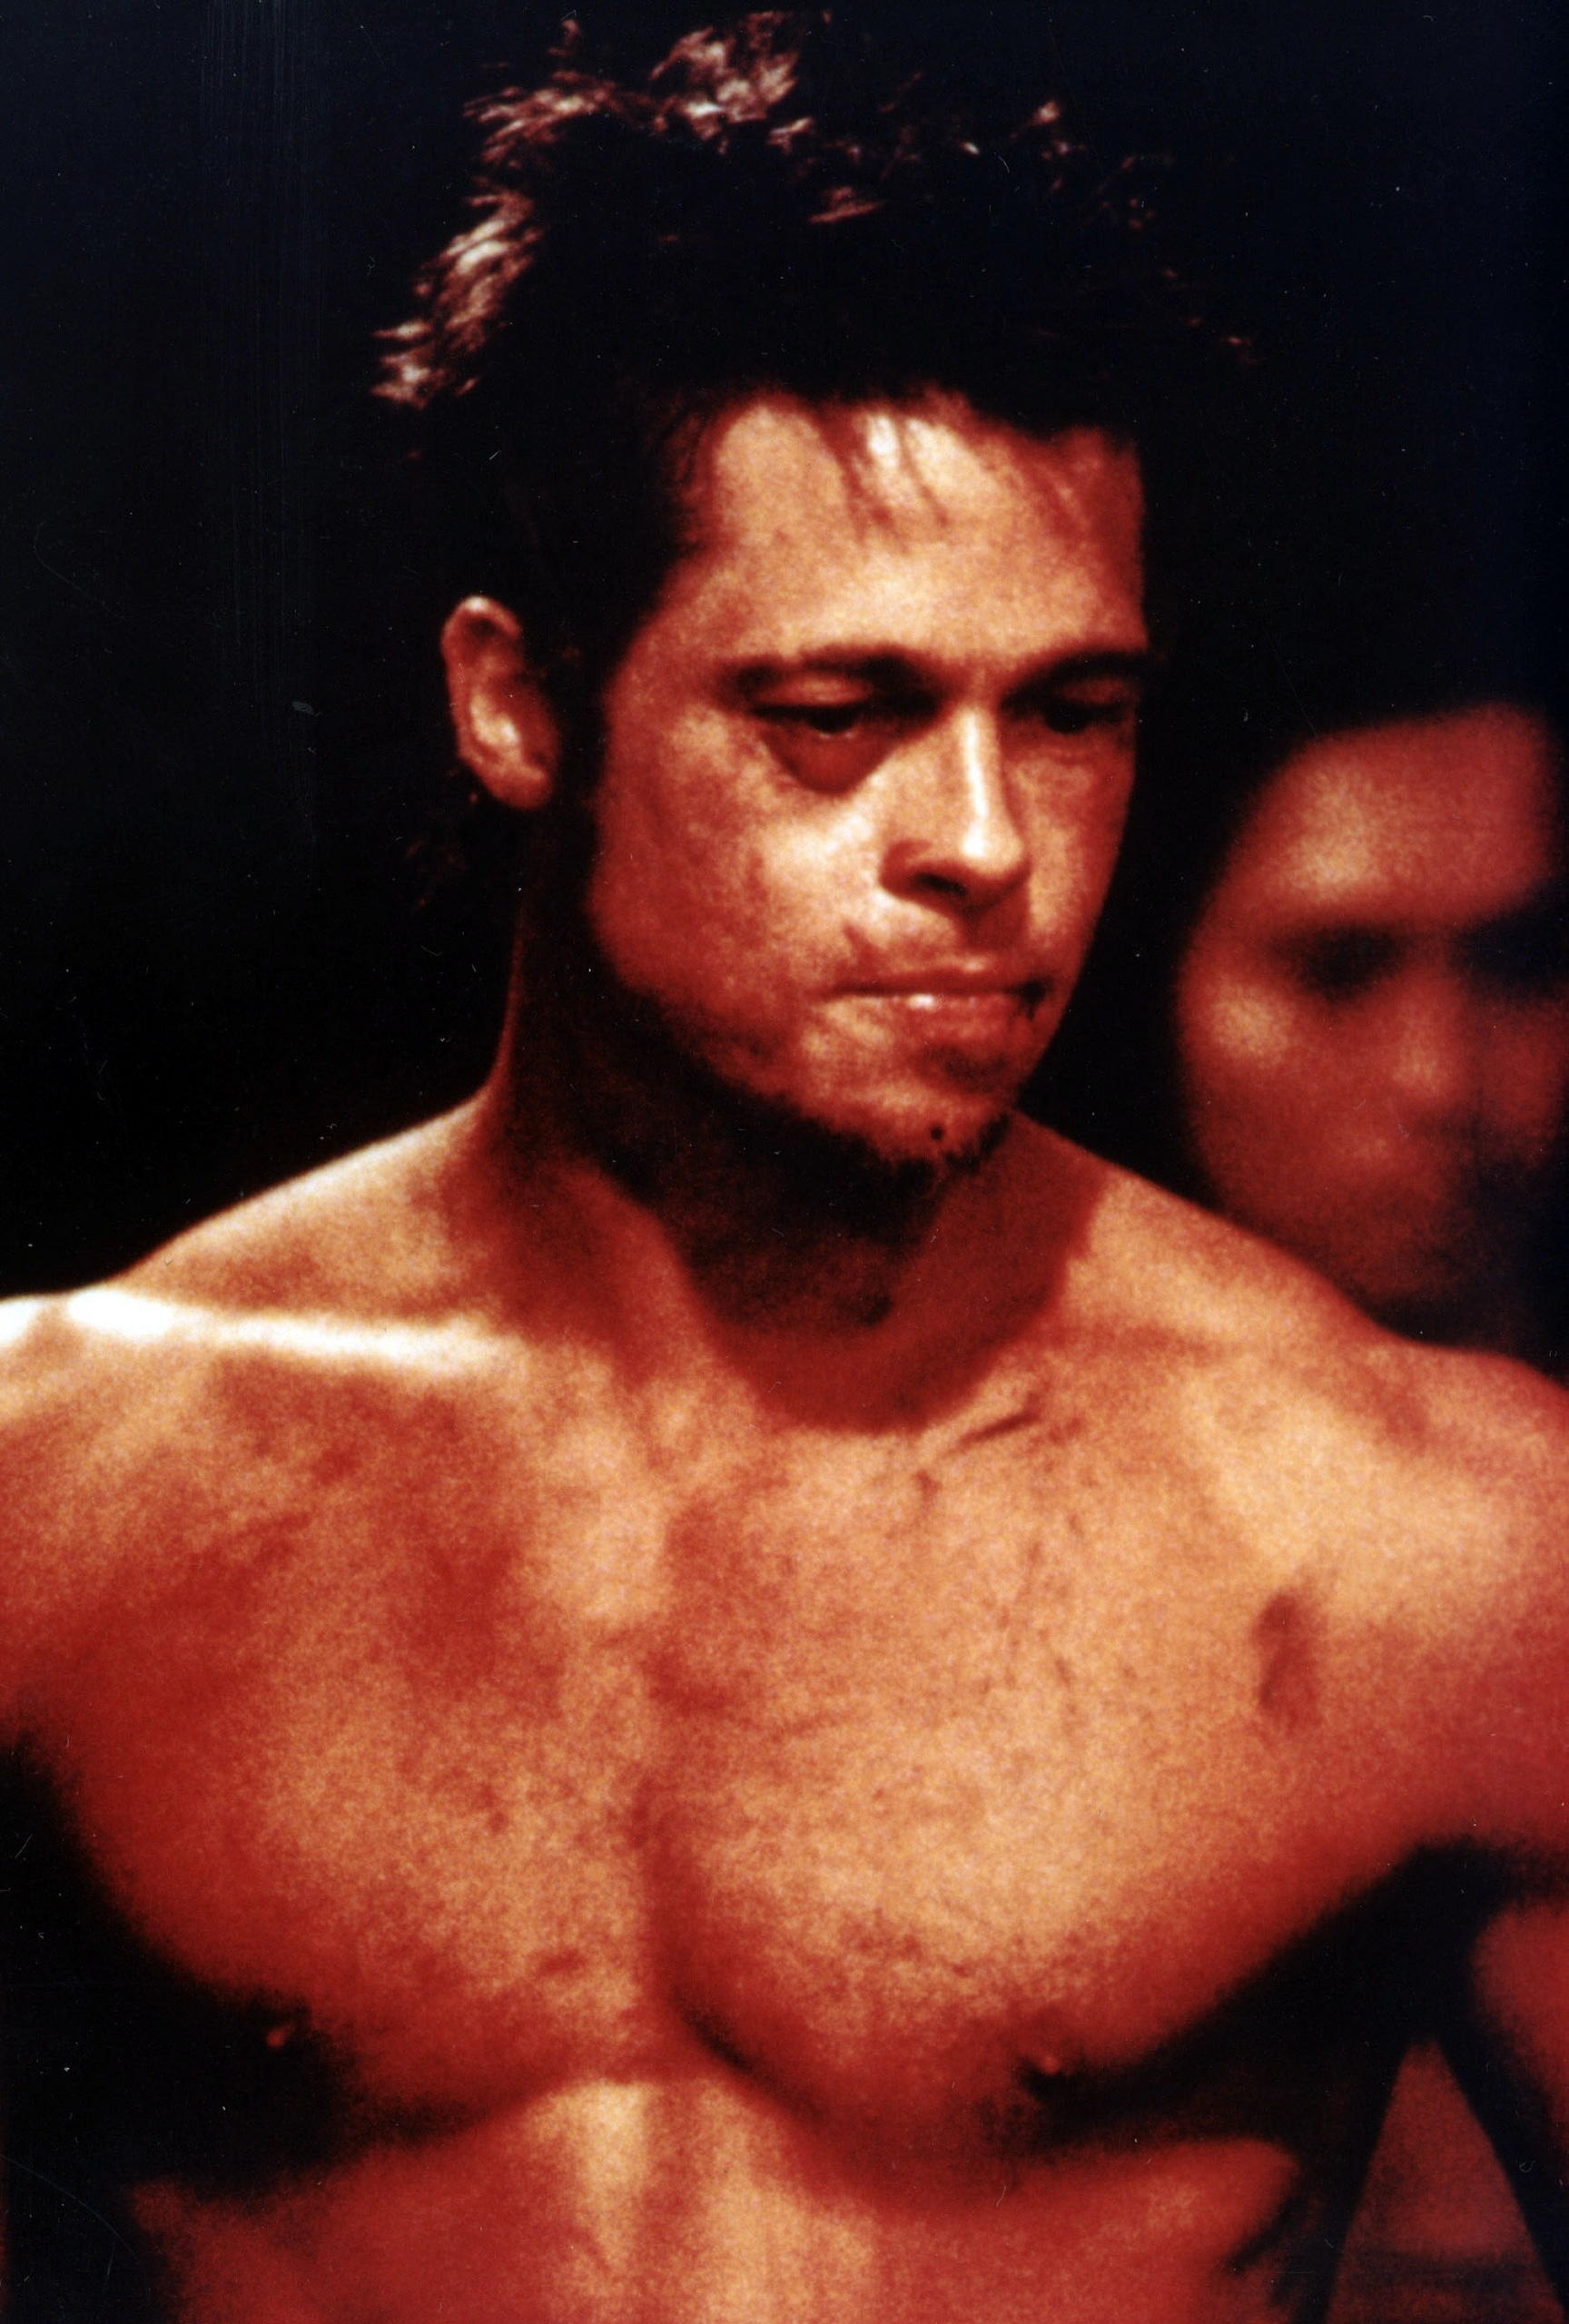 Tyler Durden images Movie Stills HD wallpaper and background photos ... Edwardnorton